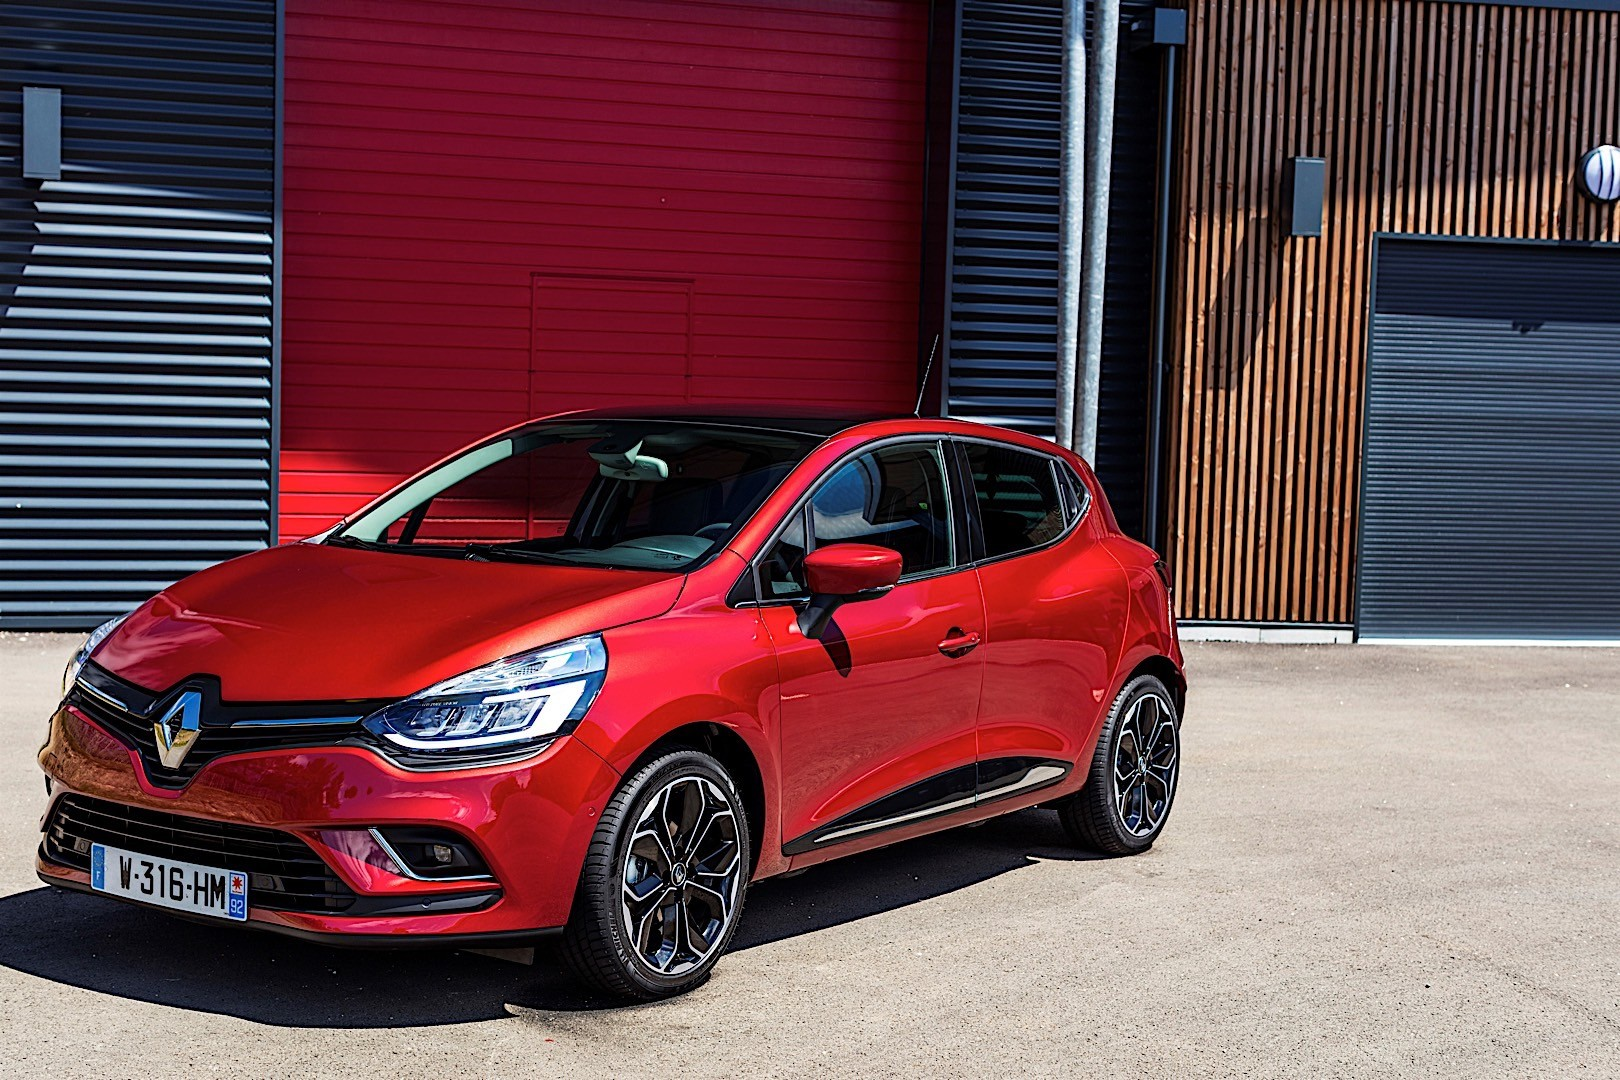 RENAULT Clio 5 Doors specs & photos - 2016, 2017, 2018 ...